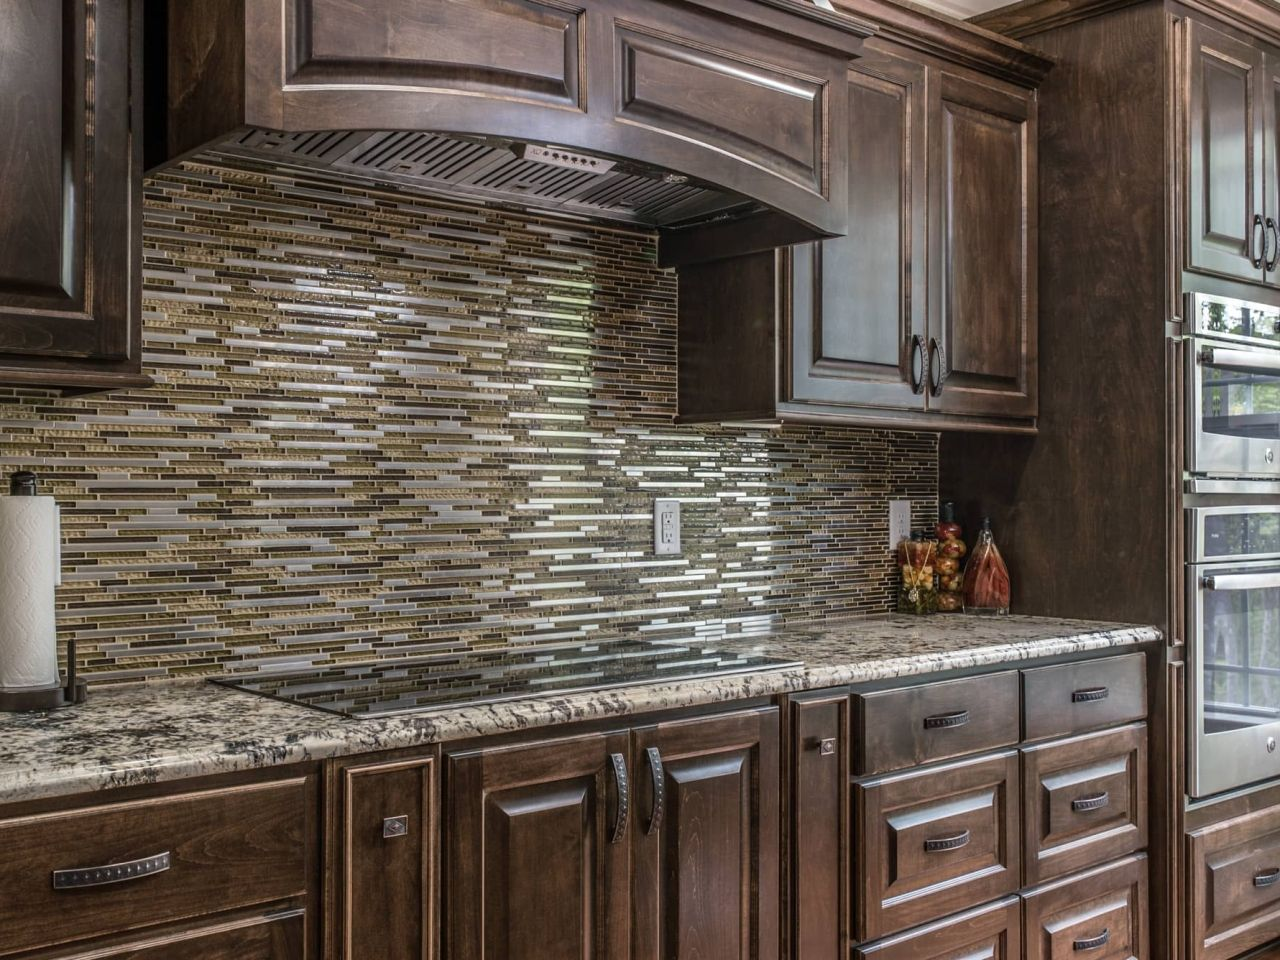 Granite Kitchen Countertops Delicatus White Charleston Sc East Coast And Design 19